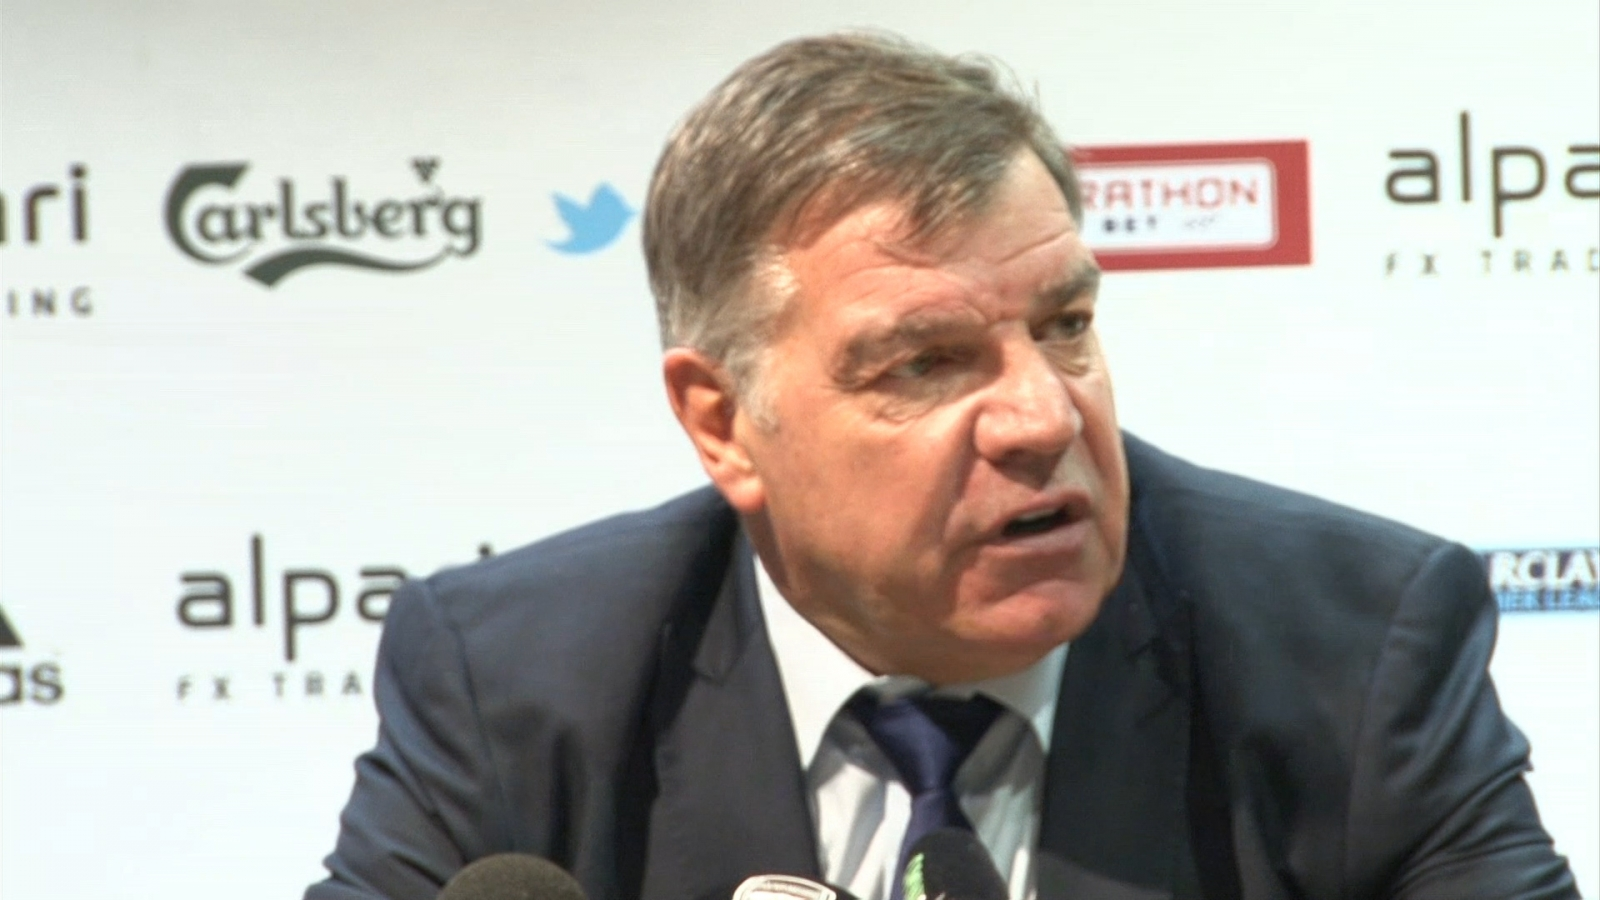 Sam Allardyce: Officials clearly got offside decision 'horribly wrong'